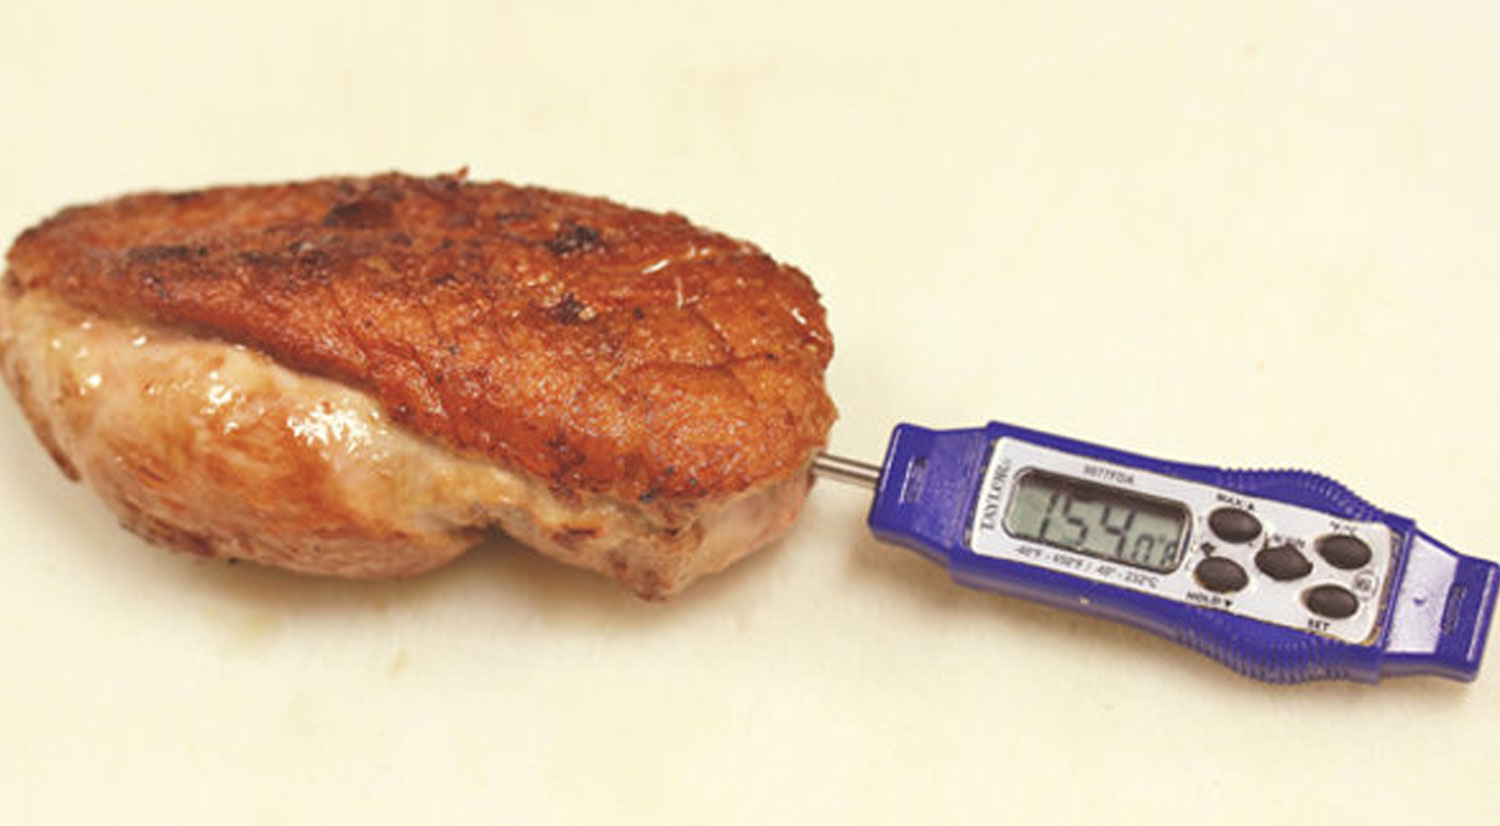 Cooking Duck - Meat Thermometer